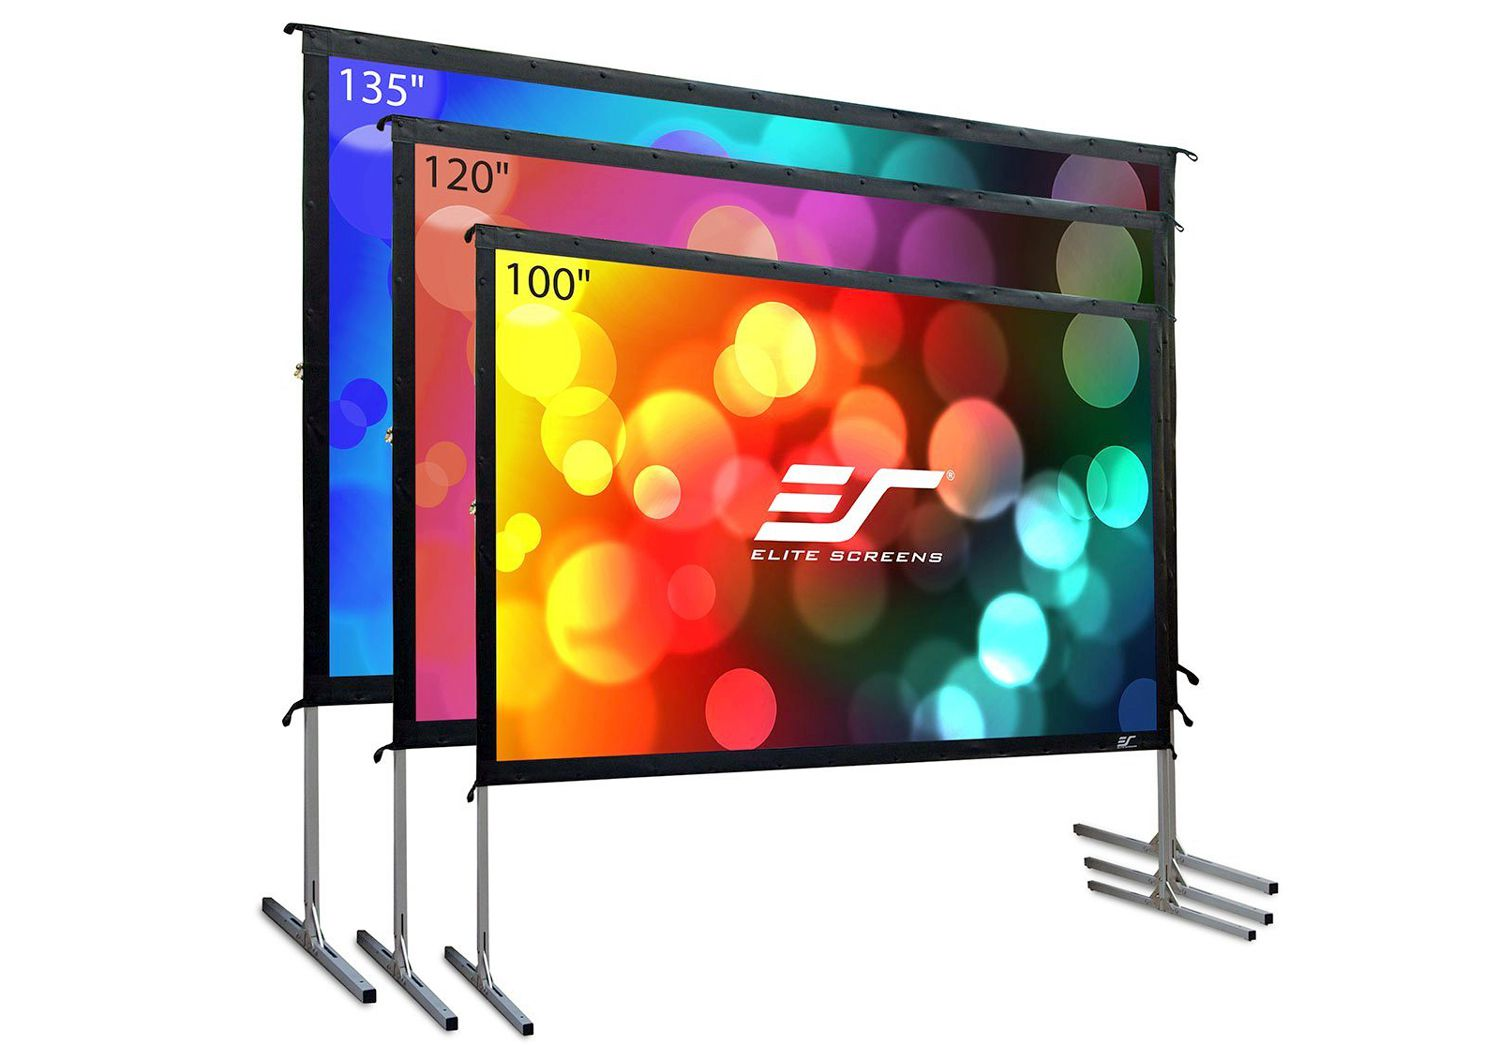 Elite Screens OMS120H2 Yard Master 2 Outdoor Projection Screen